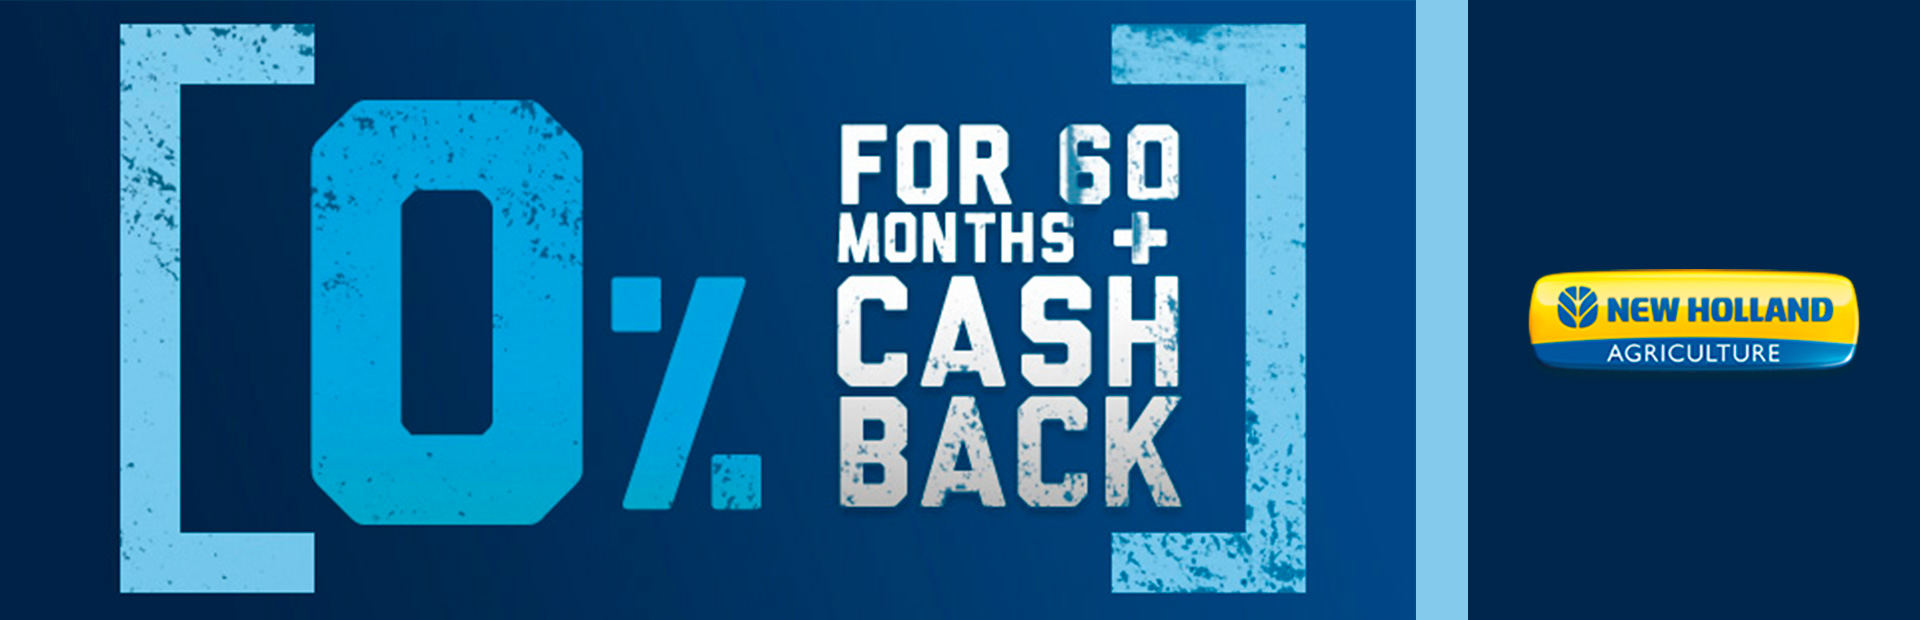 New Holland Agriculture: 0% for 60 PLUS Cash Back